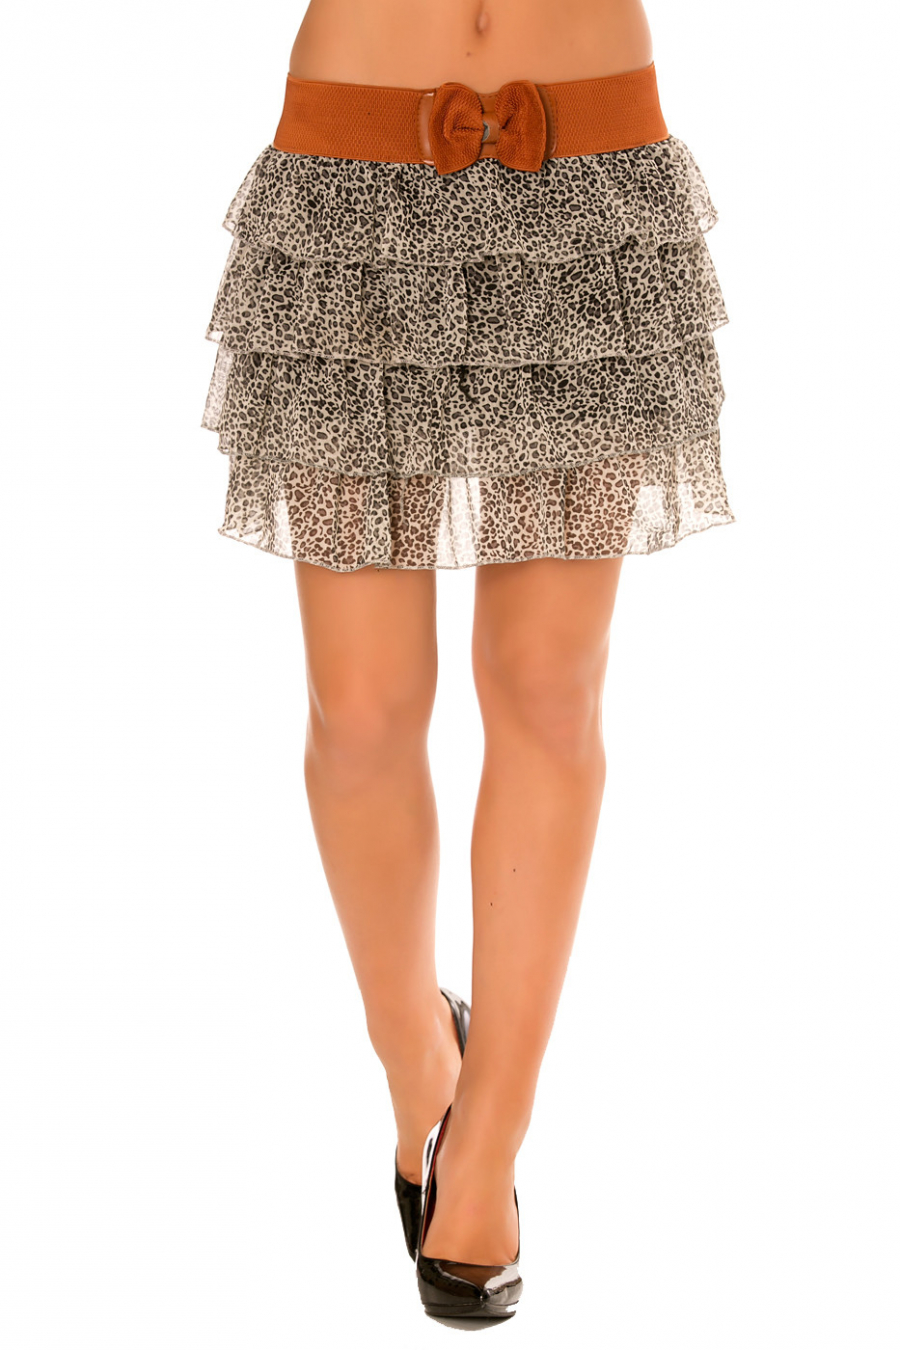 Skirt with flounce, beige / black floral prints with a wide belt. 920